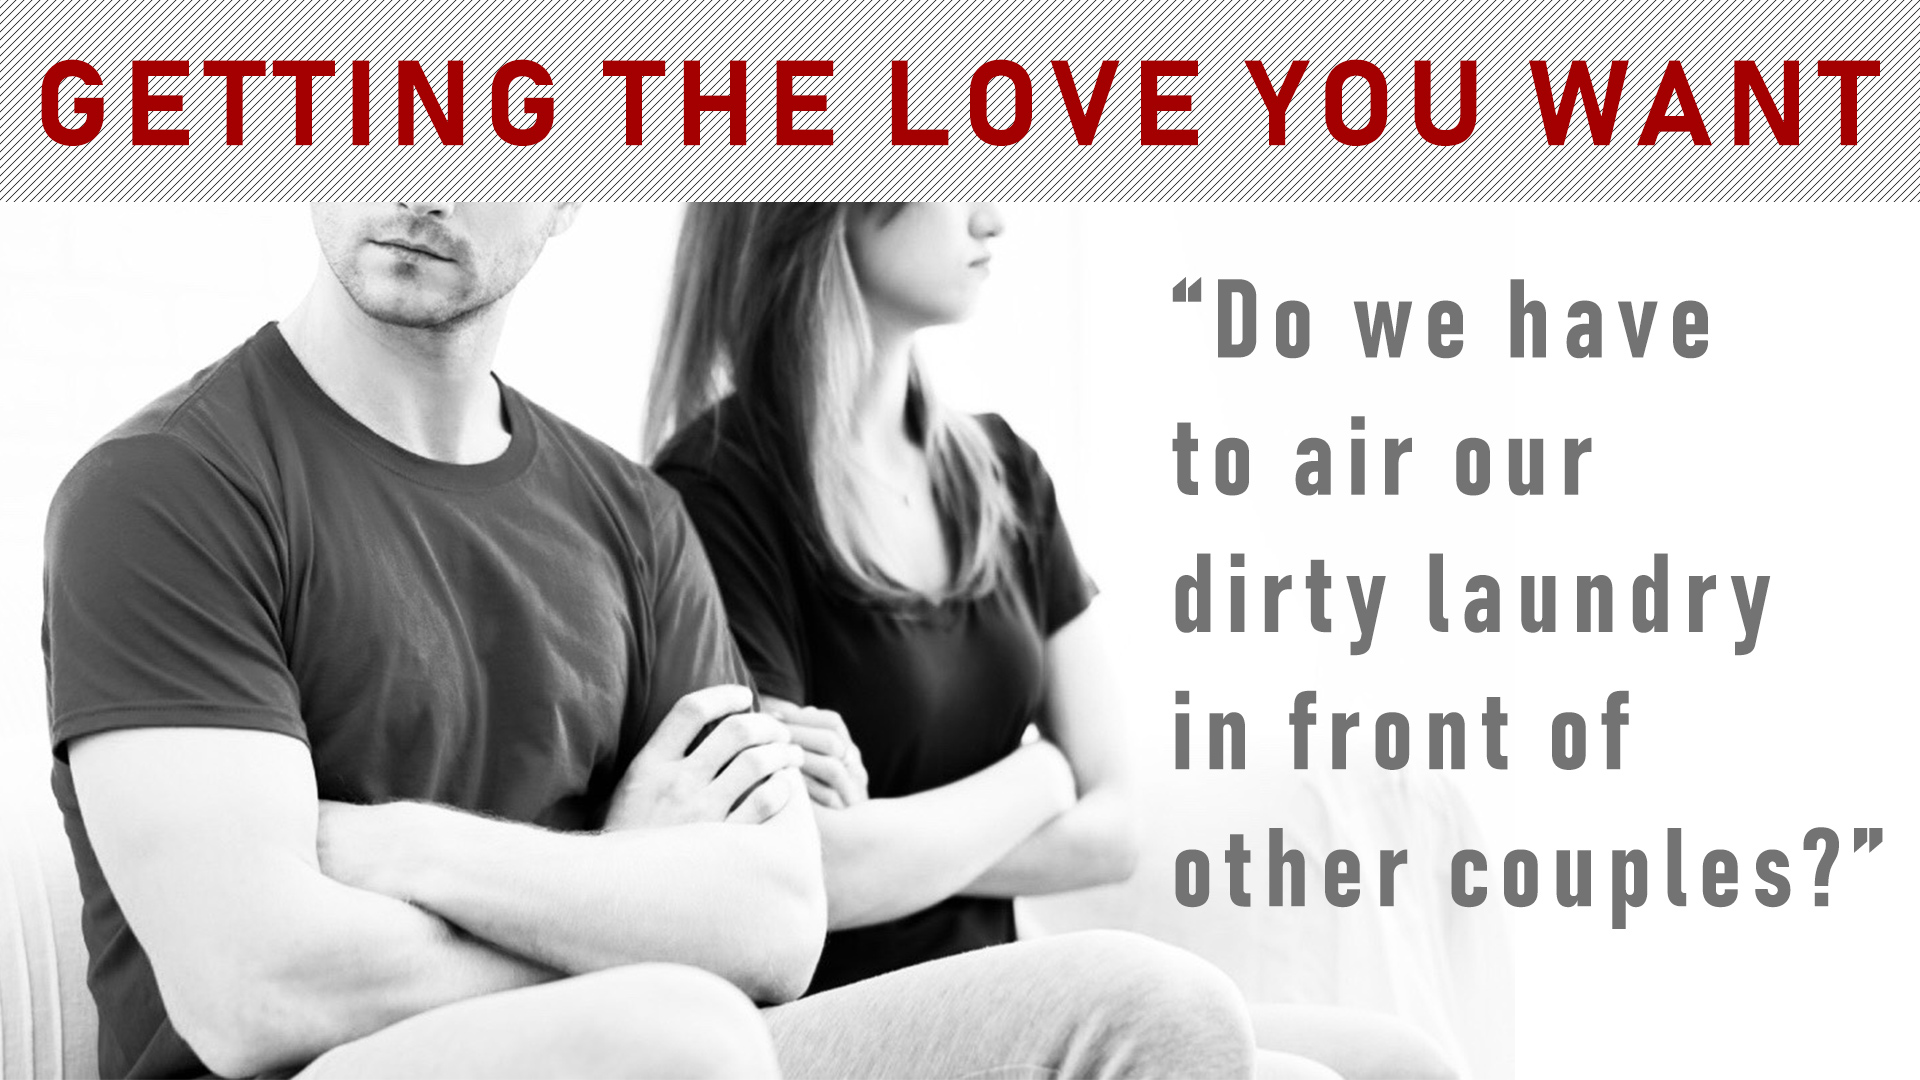 Do we have to air our dirty laundry in front of other couples?